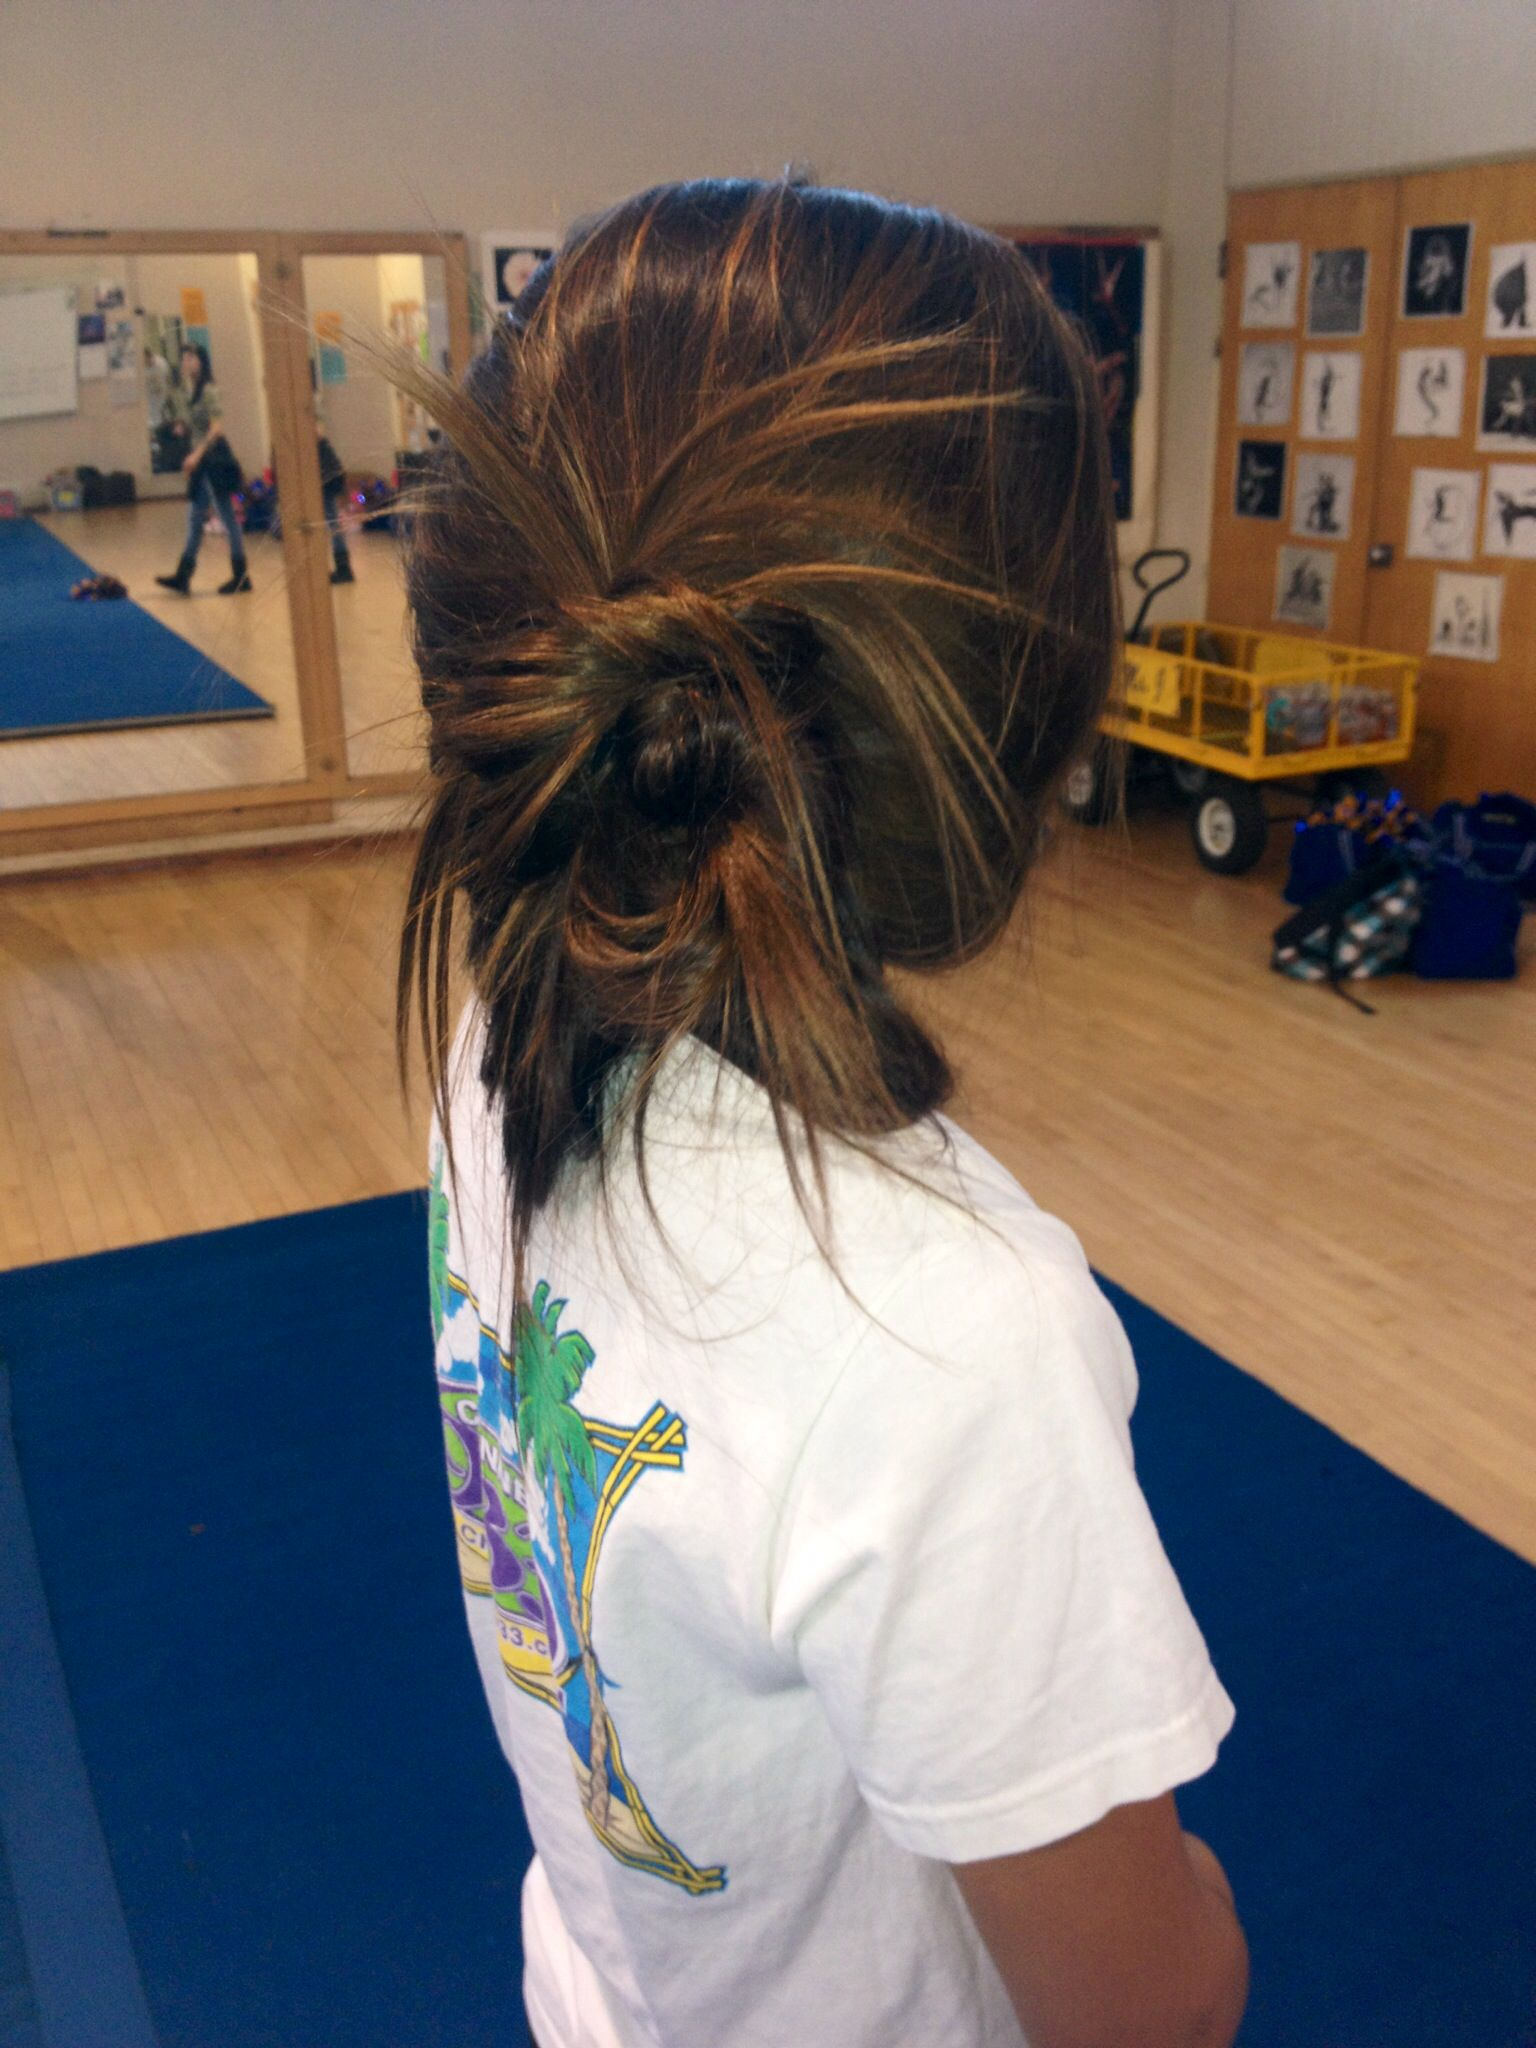 Competition Cheer Hairstyles Fade Haircut